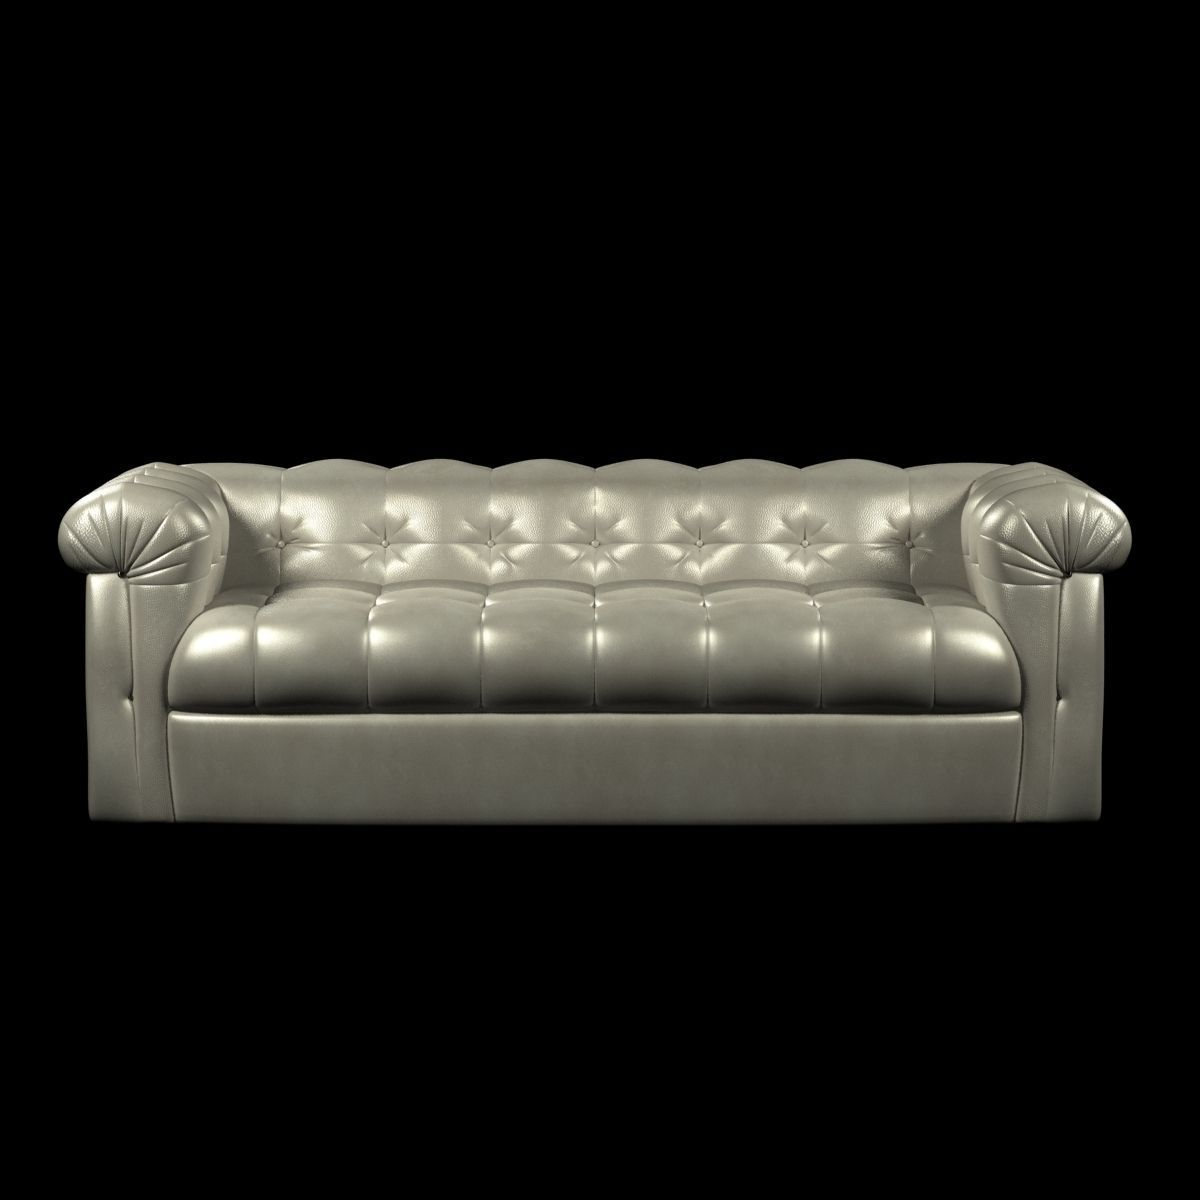 Edward Wormley Dunbar Six Foot Tufted Leather Sofa 3D model MAX